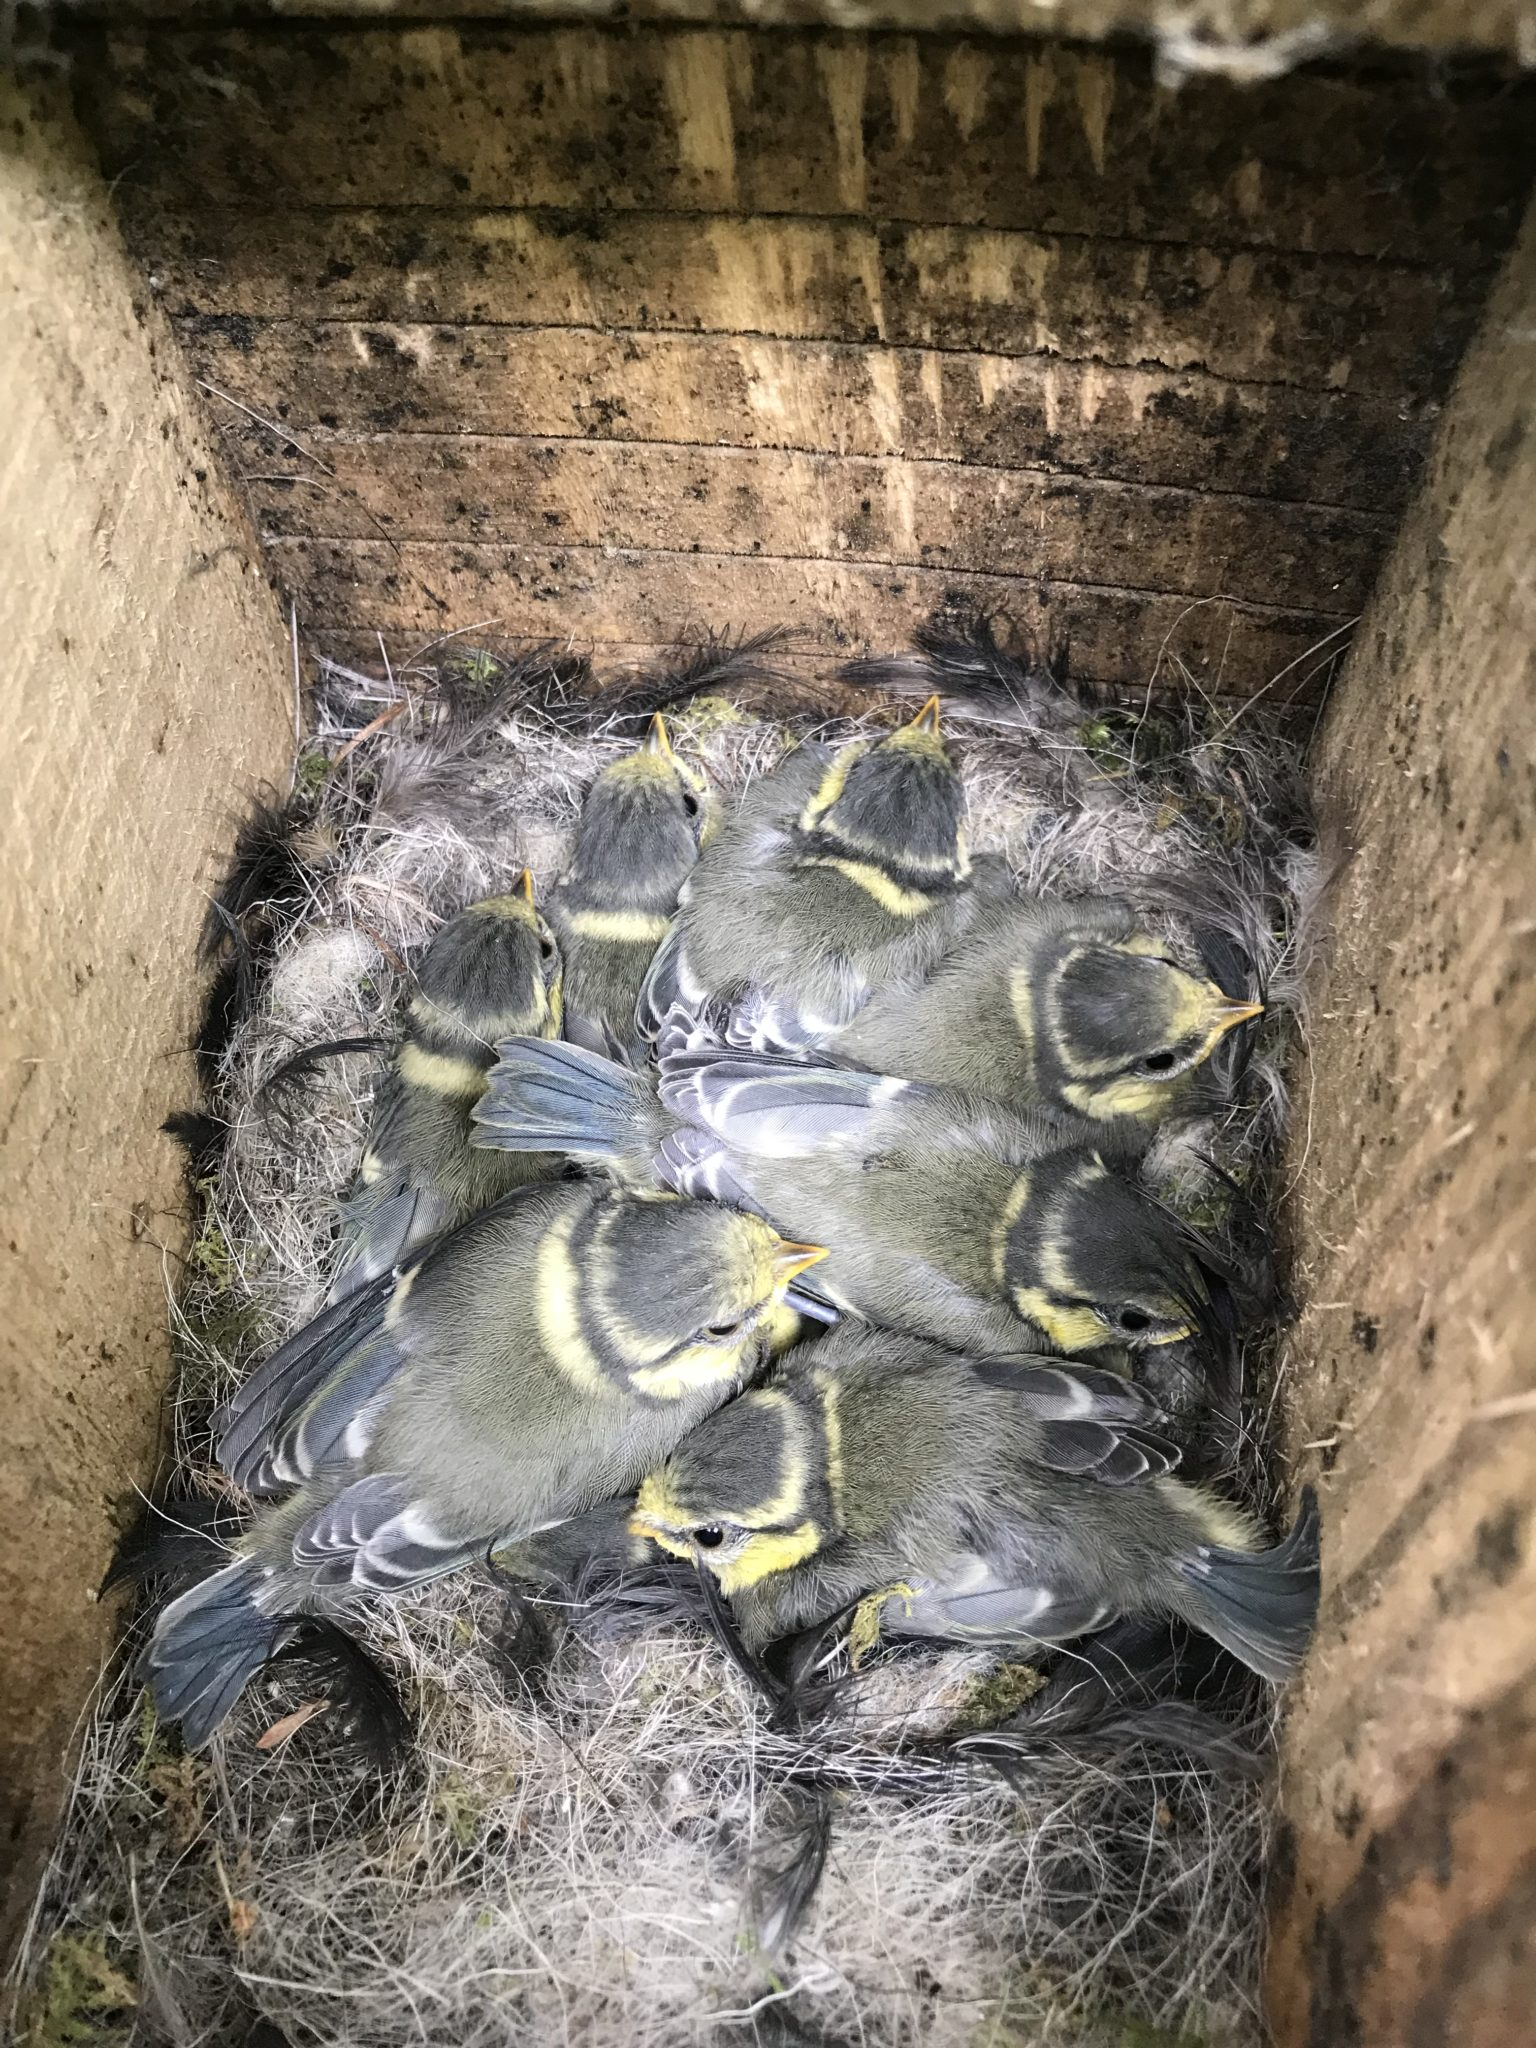 Juvenile Blue Tits almost ready to leave the nest